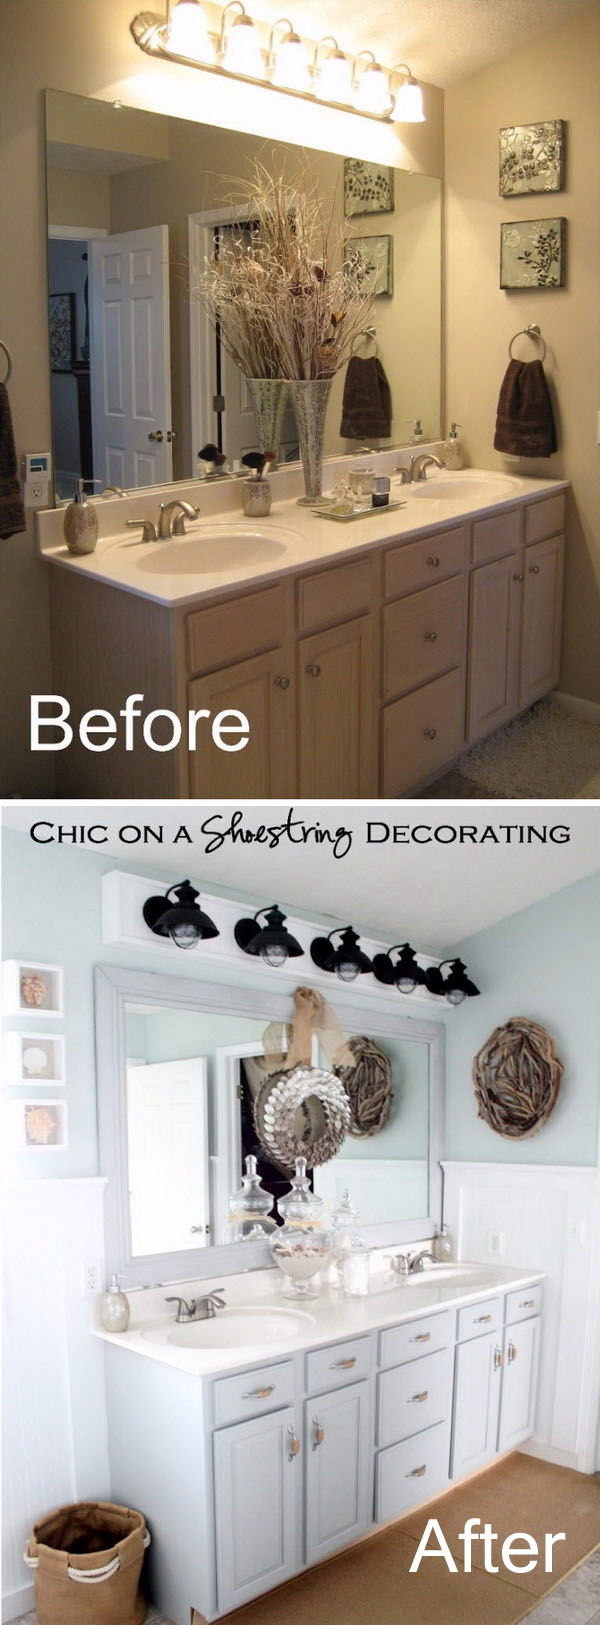 Pleasing Before And After 20 Awesome Bathroom Makeovers Hative Best Image Libraries Thycampuscom